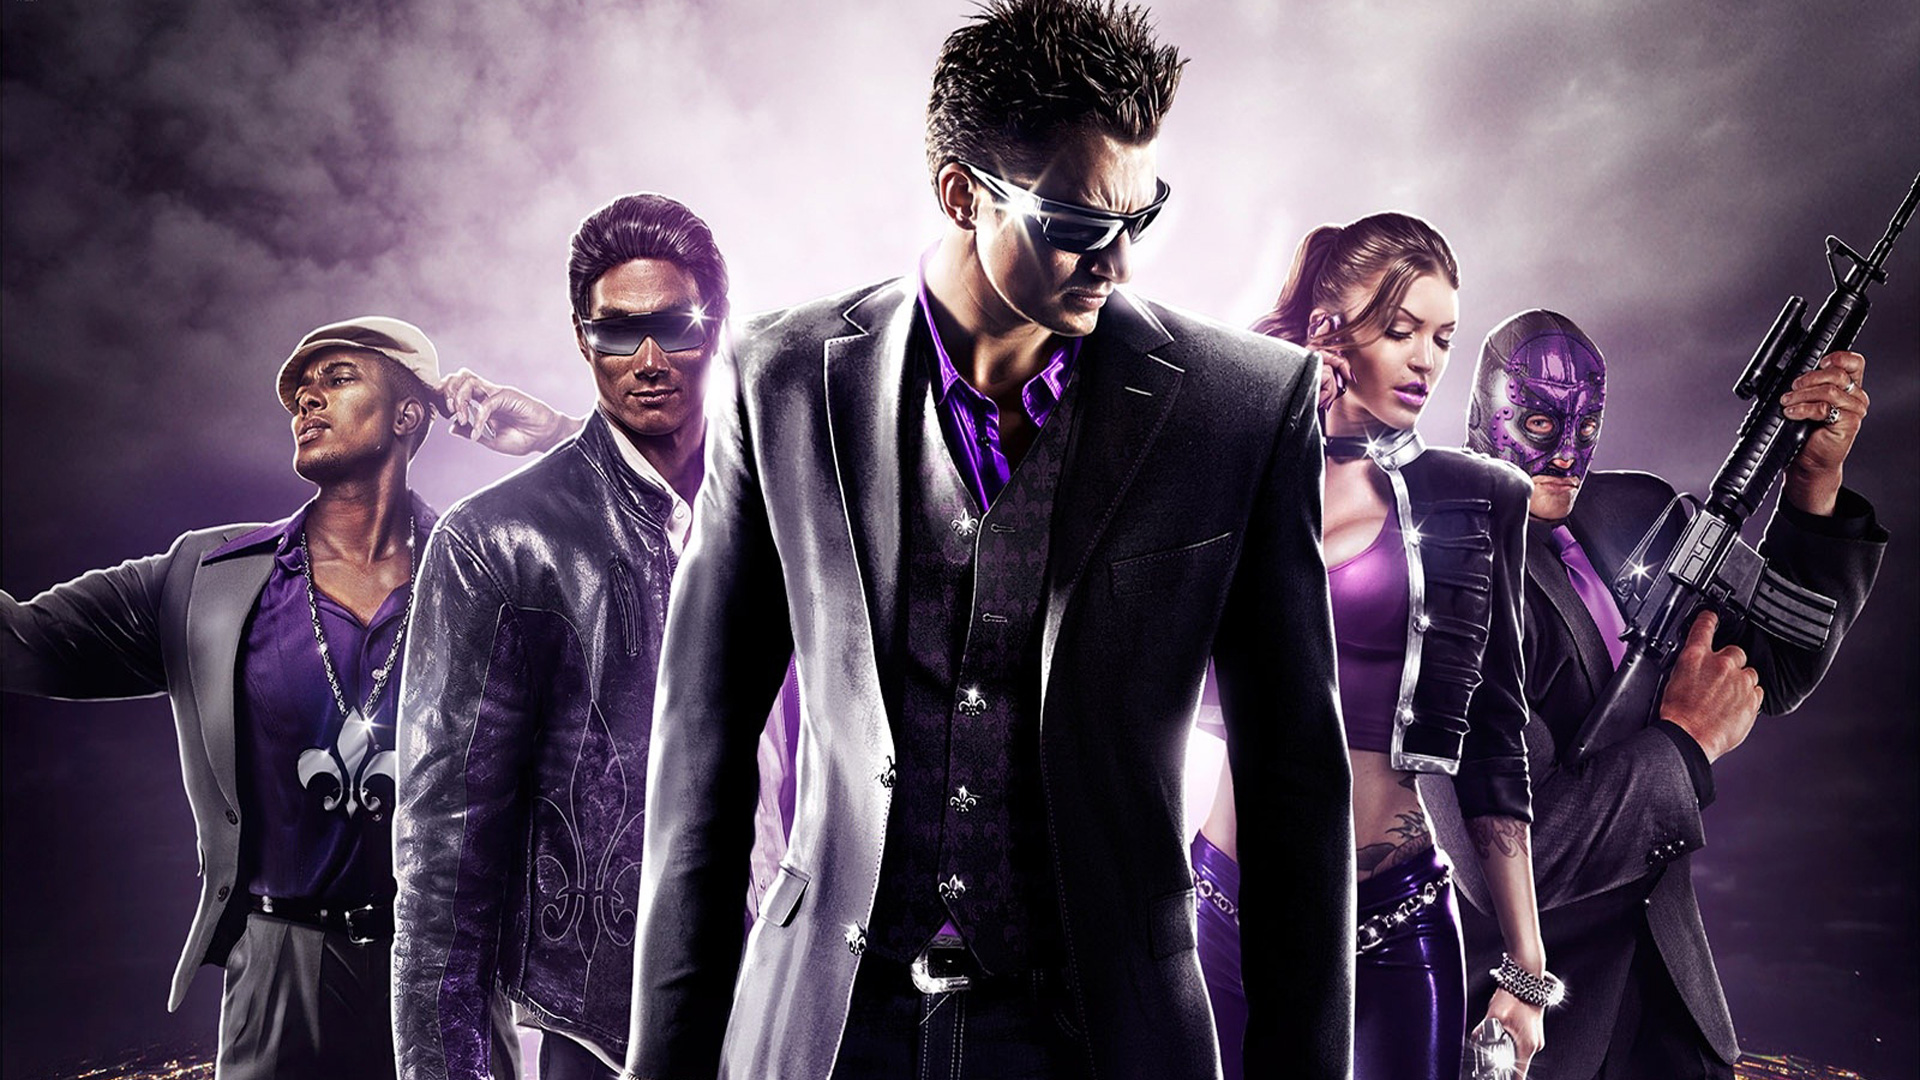 Saints Row 3 Wallpaper